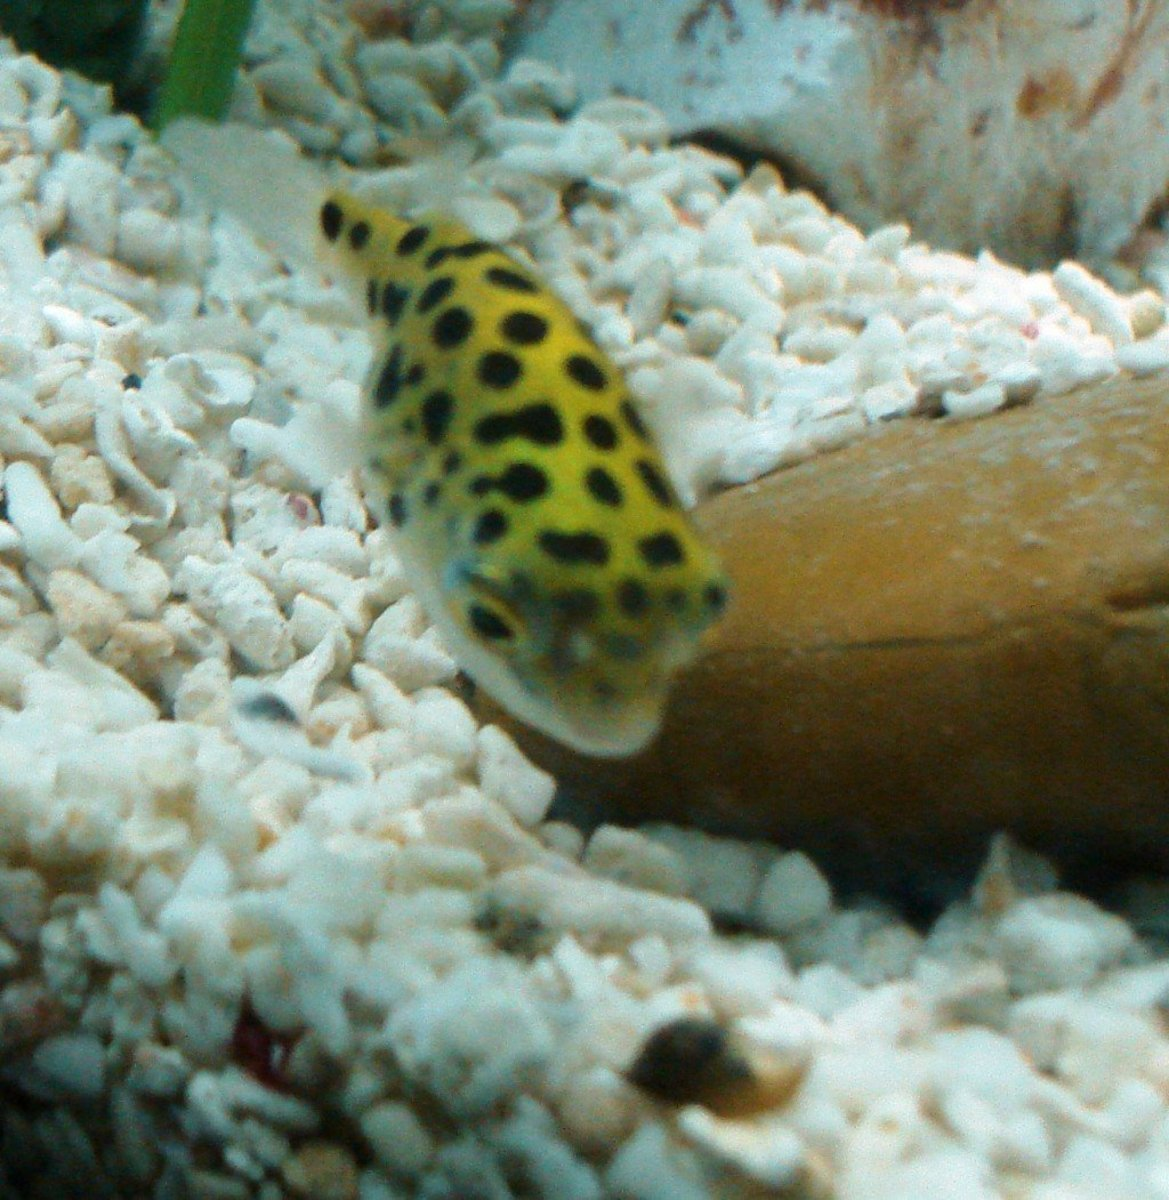 A Green Spotted Puffer Hunting a Snail